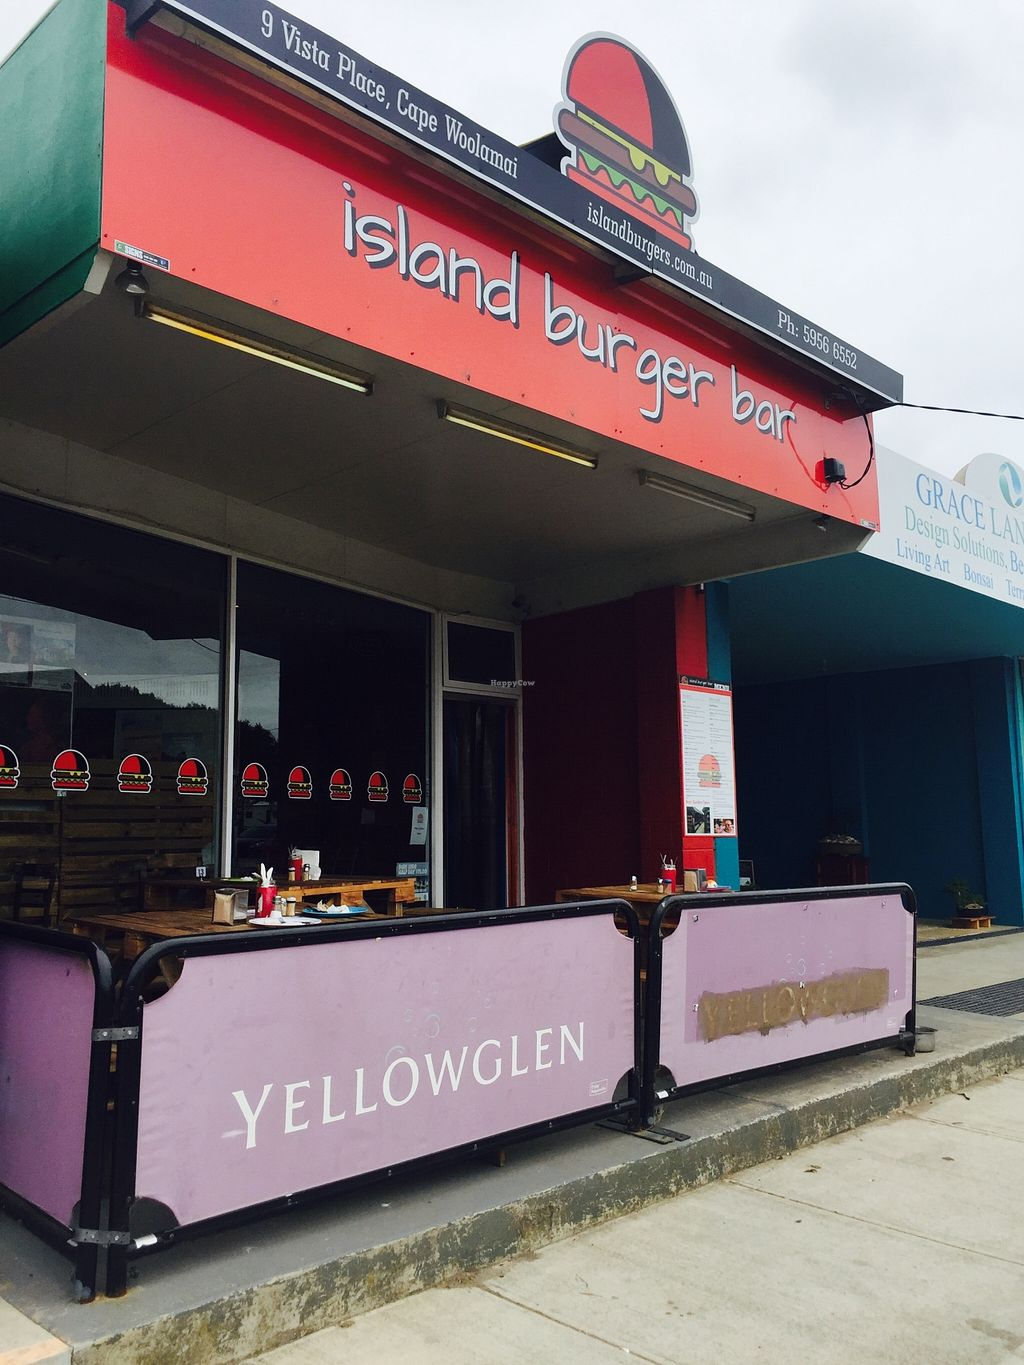 """Photo of Island Burger Bar  by <a href=""""/members/profile/karlaess"""">karlaess</a> <br/>Exterior  <br/> January 9, 2016  - <a href='/contact/abuse/image/67924/131760'>Report</a>"""